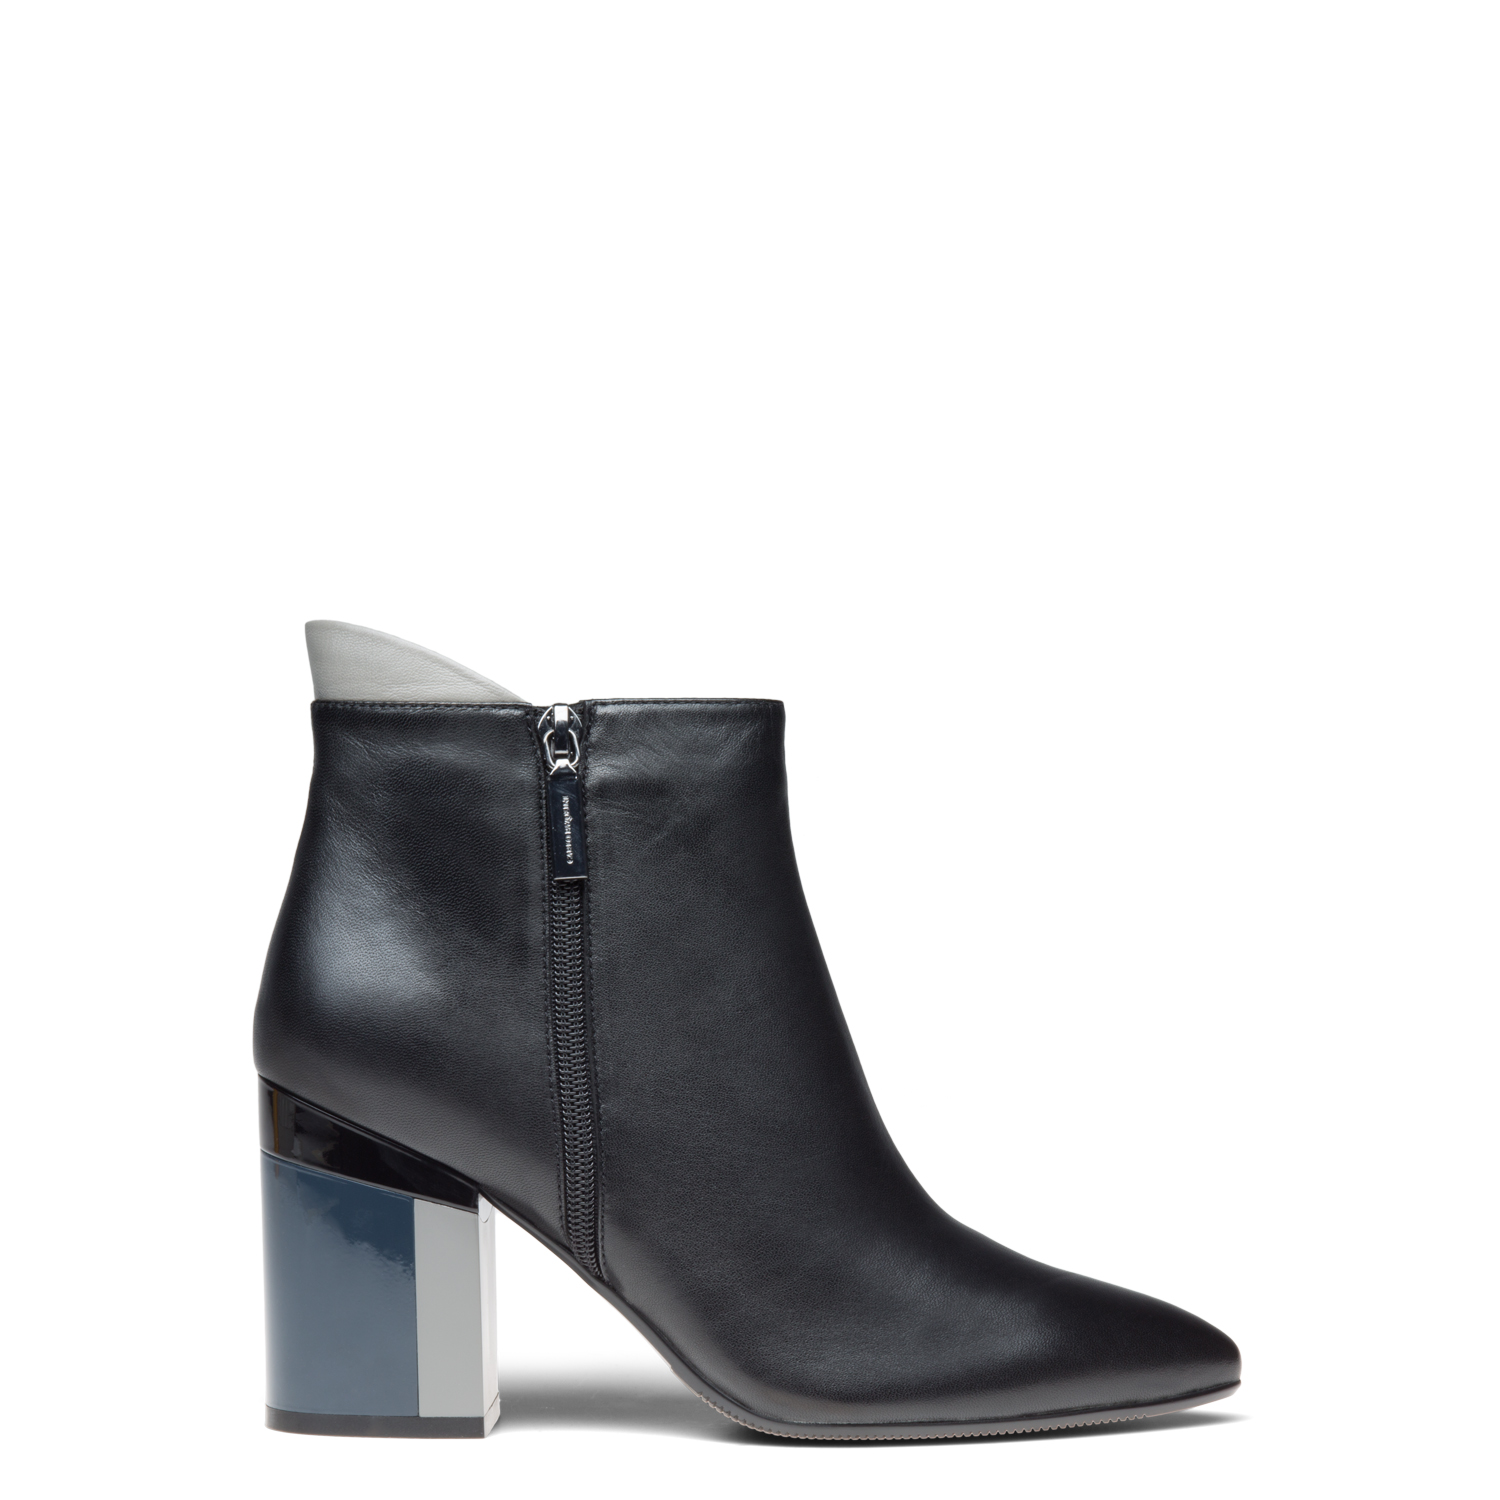 Women's cold weather ankle boots CARLO PAZOLINI FL-JAE1-1